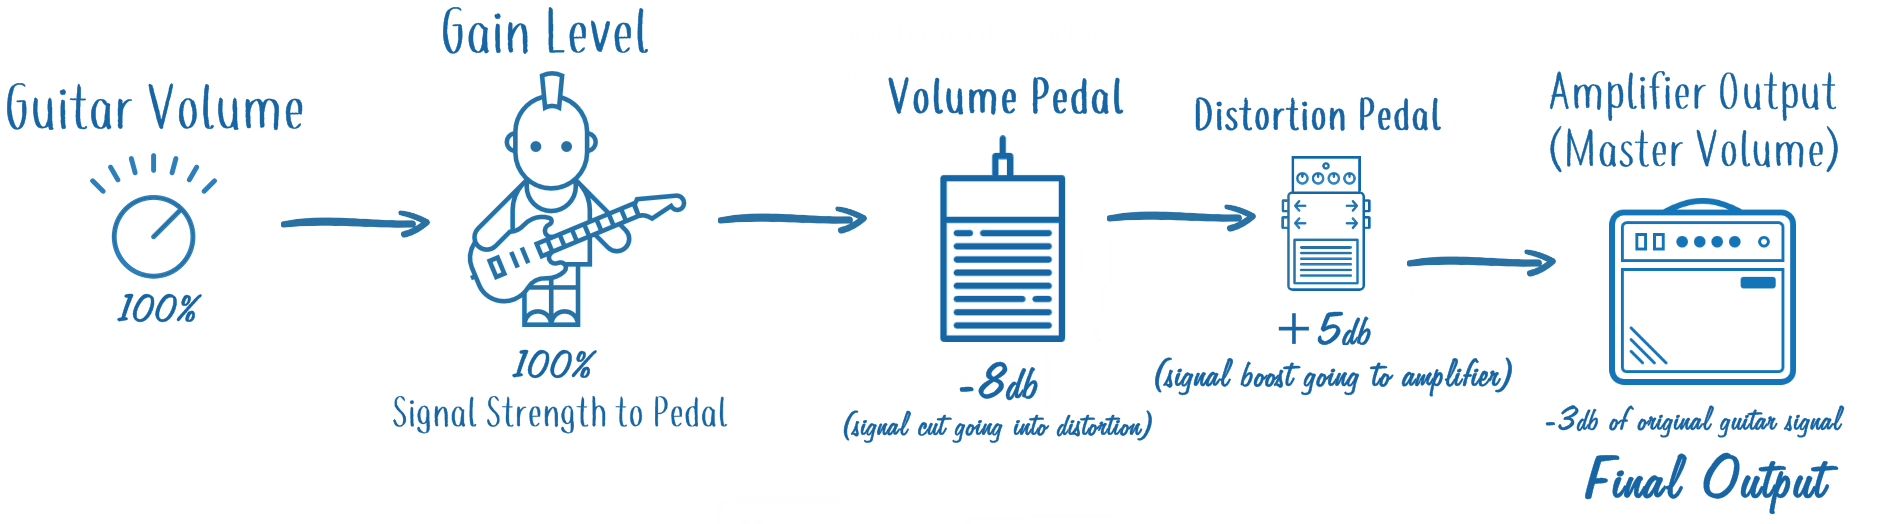 Guitar Signal Volume Changes with Volume and Distortion Pedal